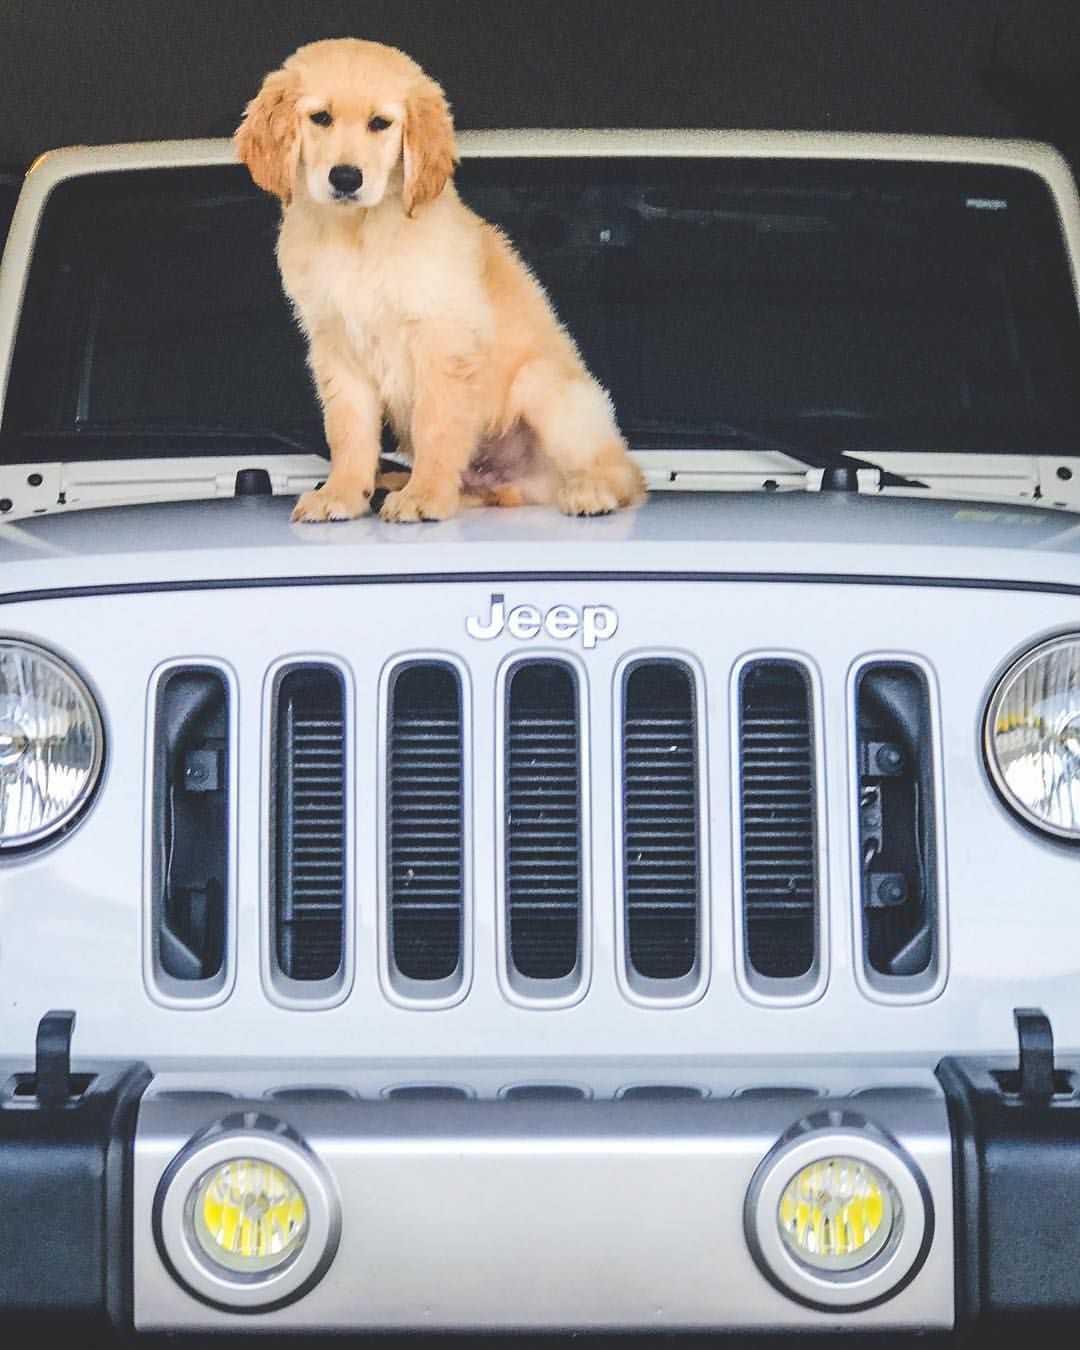 Jeep On Instagram Security System Morgan R Jeep